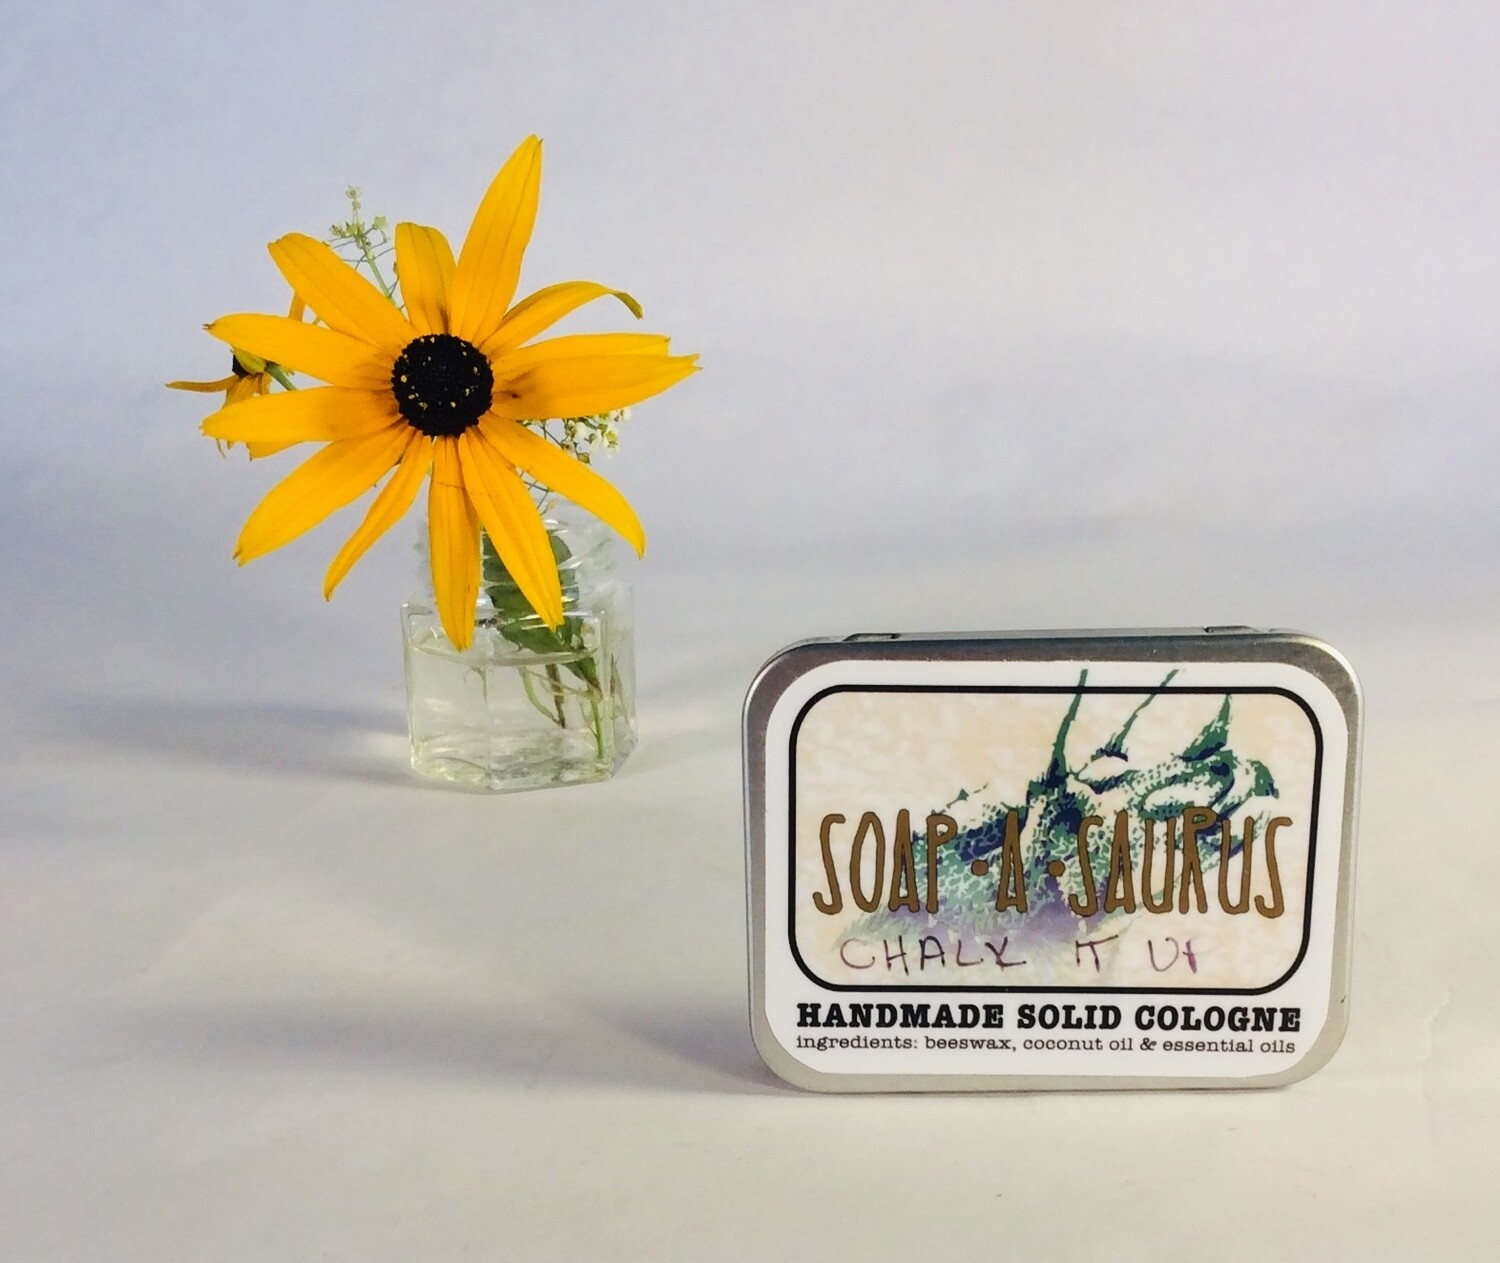 cologne, solid, all-natural, handmade, Chalk It Up scent; Soap-A-Saurus; each